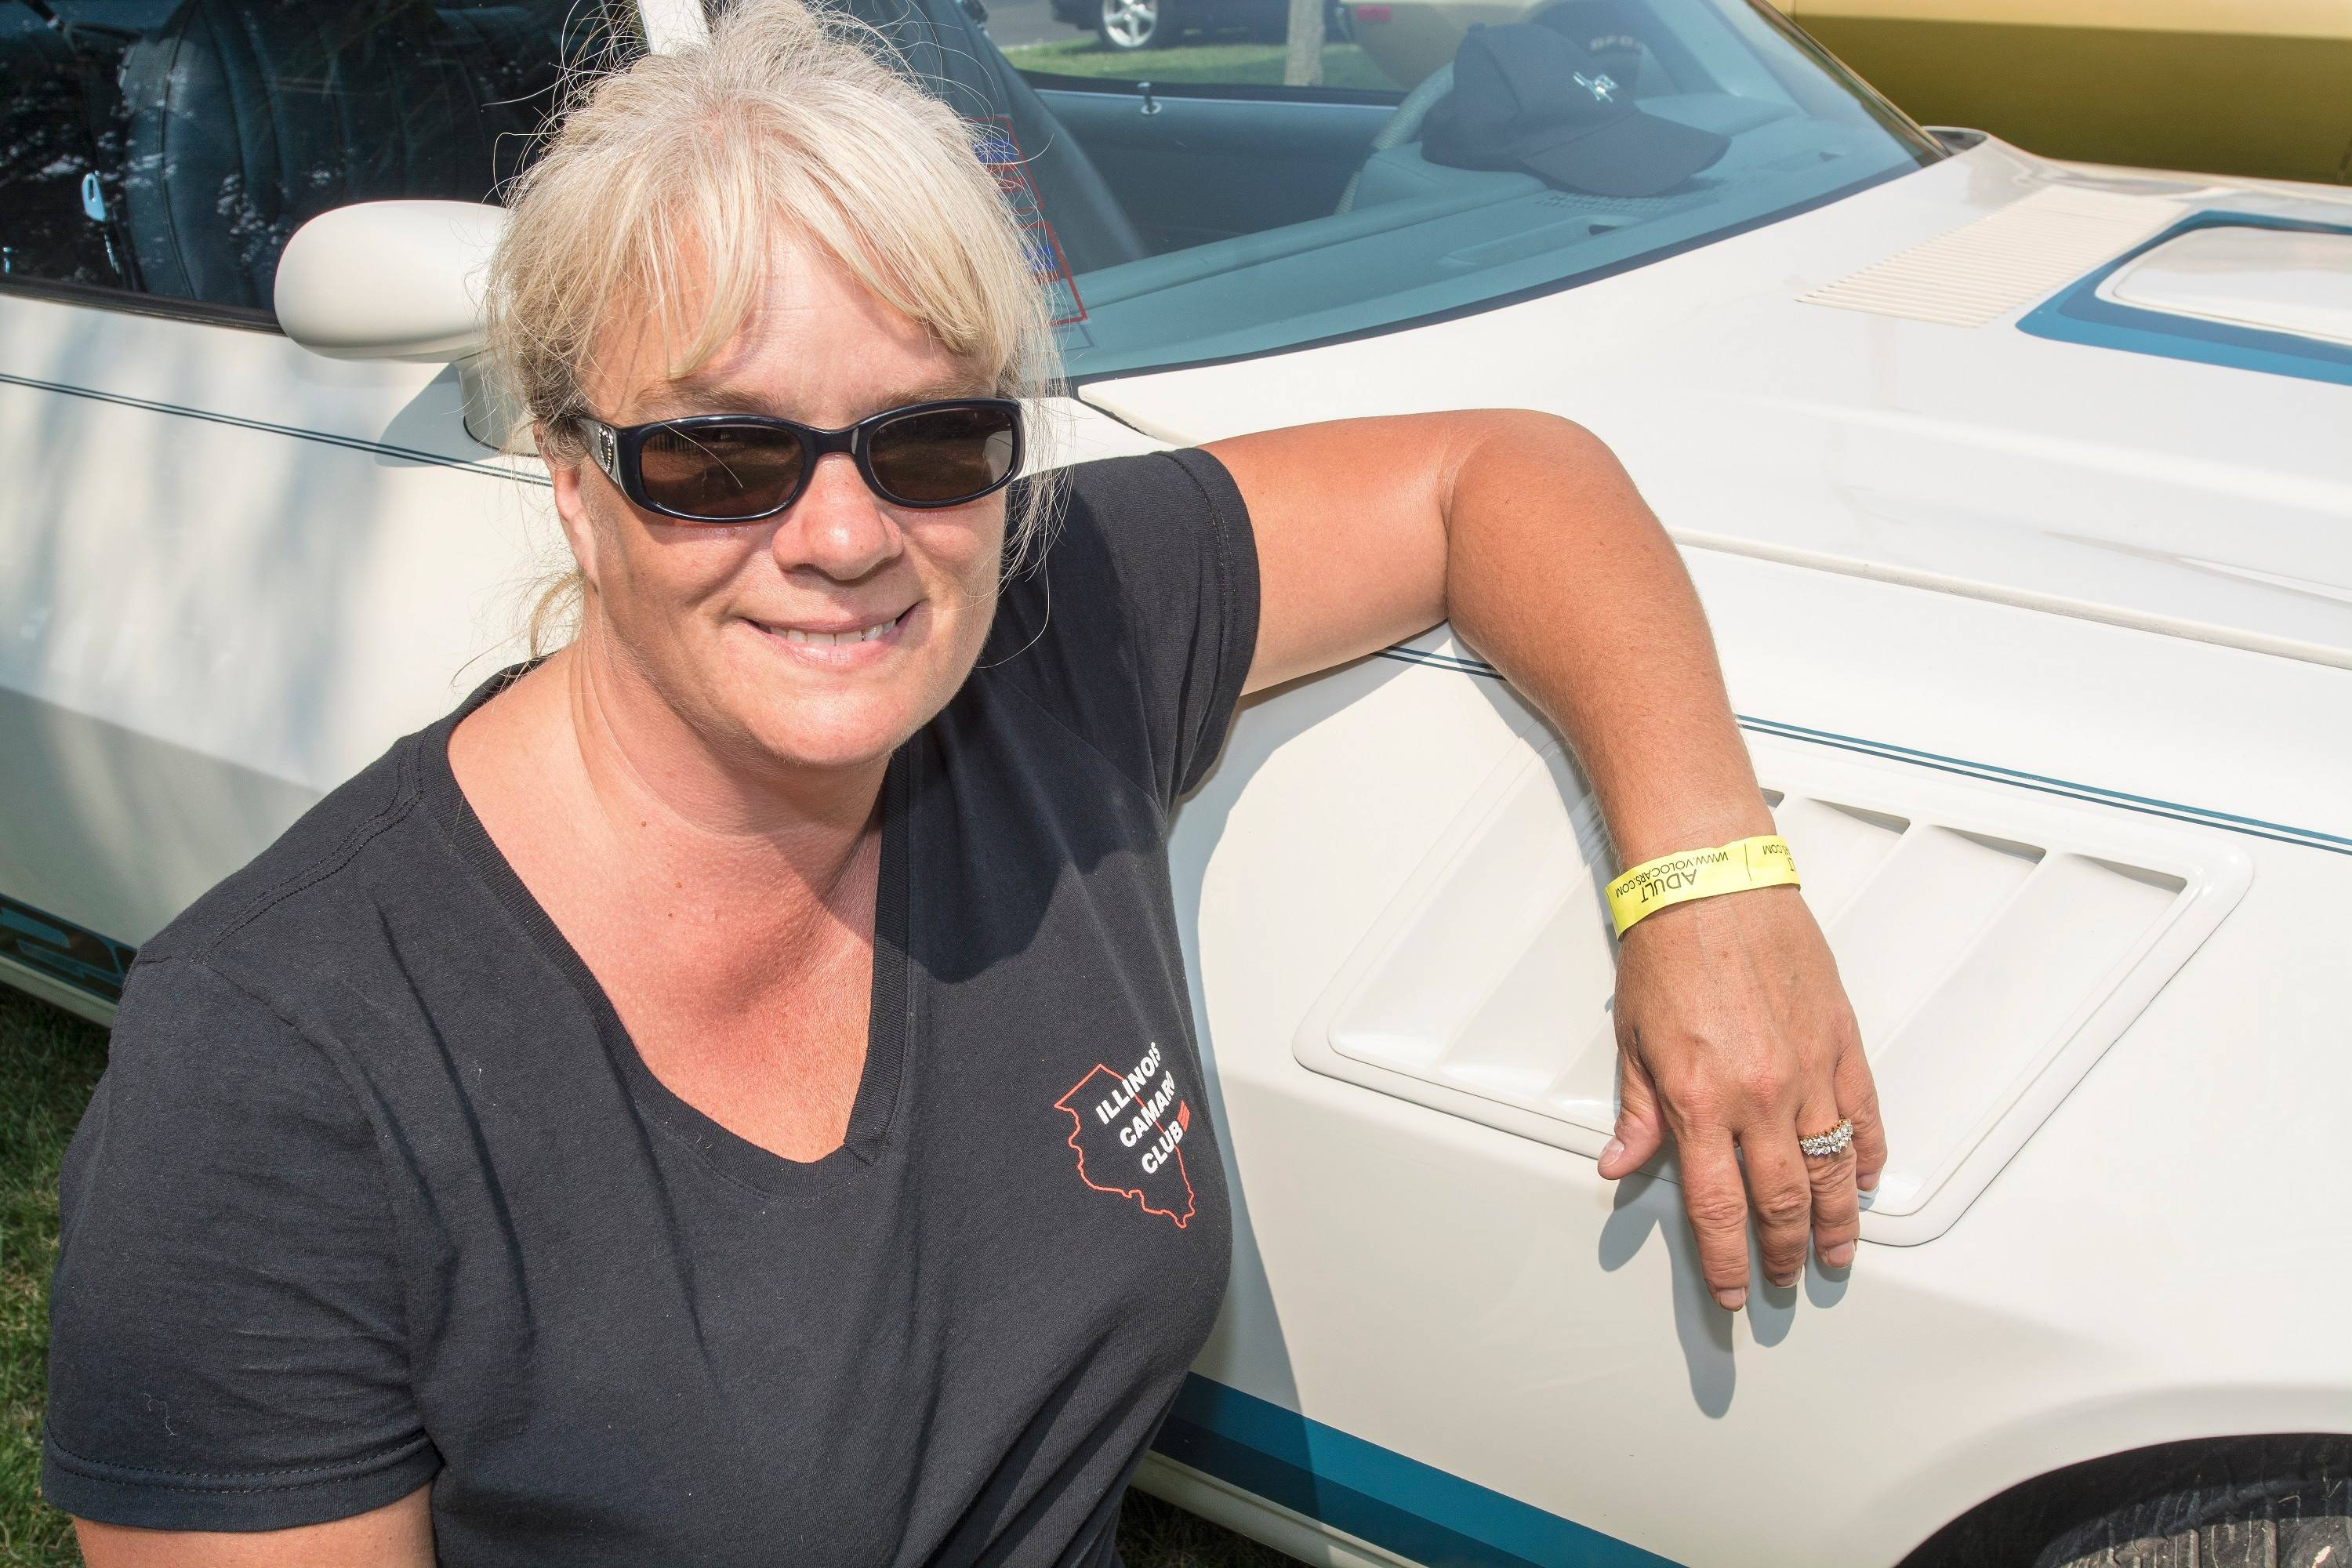 Shannon Camarata of Spring Grove first saw her car at an Illinois Camaro Club picnic five years ago.